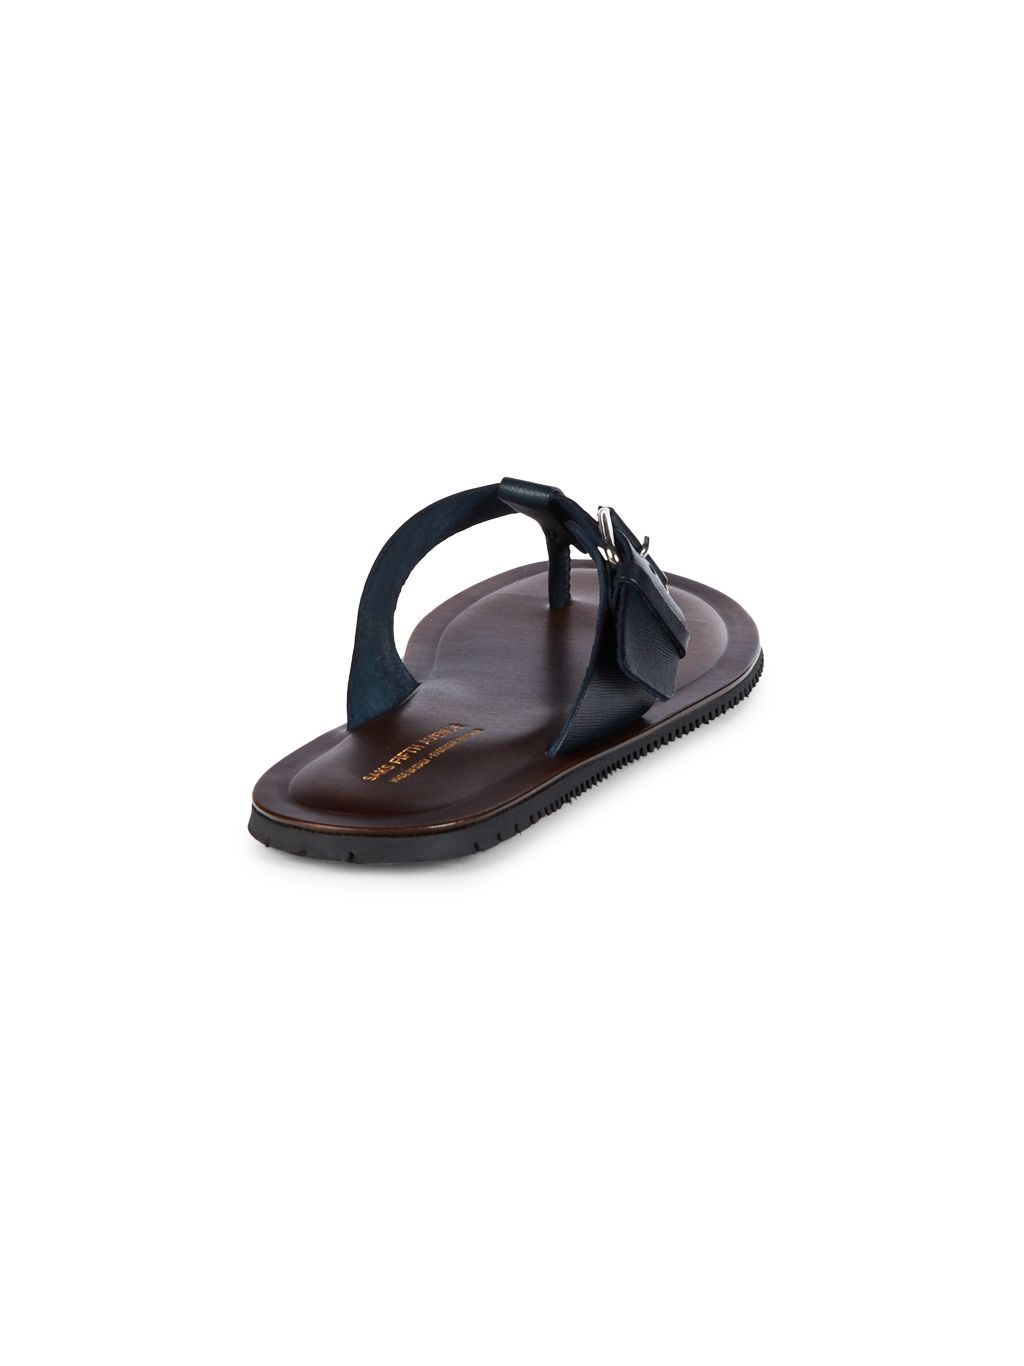 Saks Fifth Avenue Made in Italy Buckle Thong Sandals